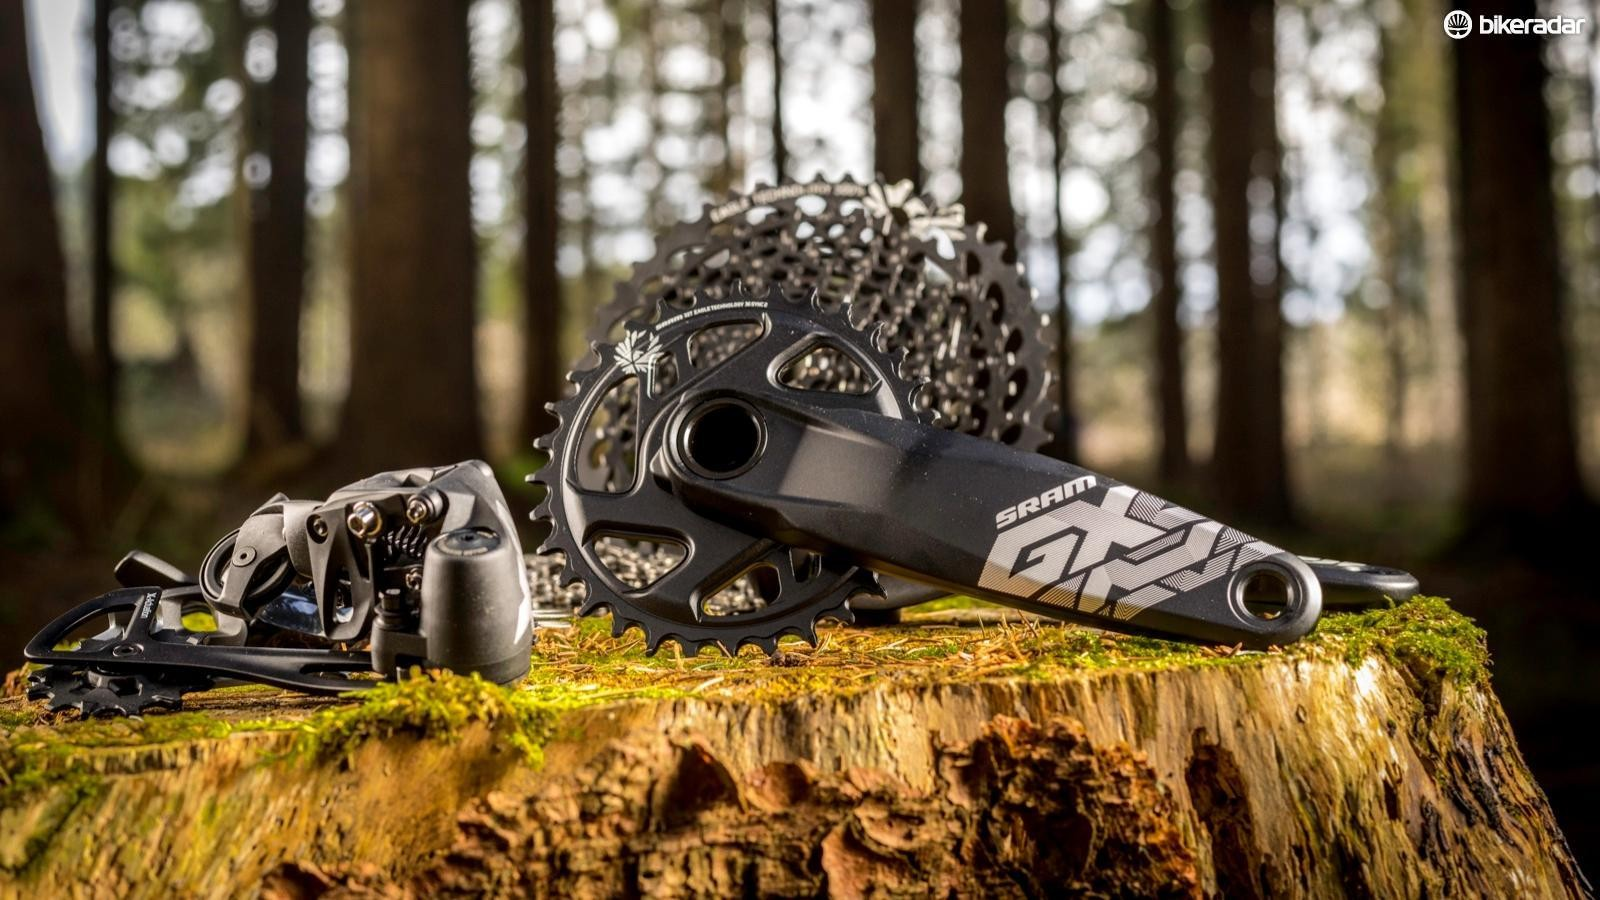 The GX Eagle group brings the 500-percent range of SRAM's premium 12-speed groups to the masses